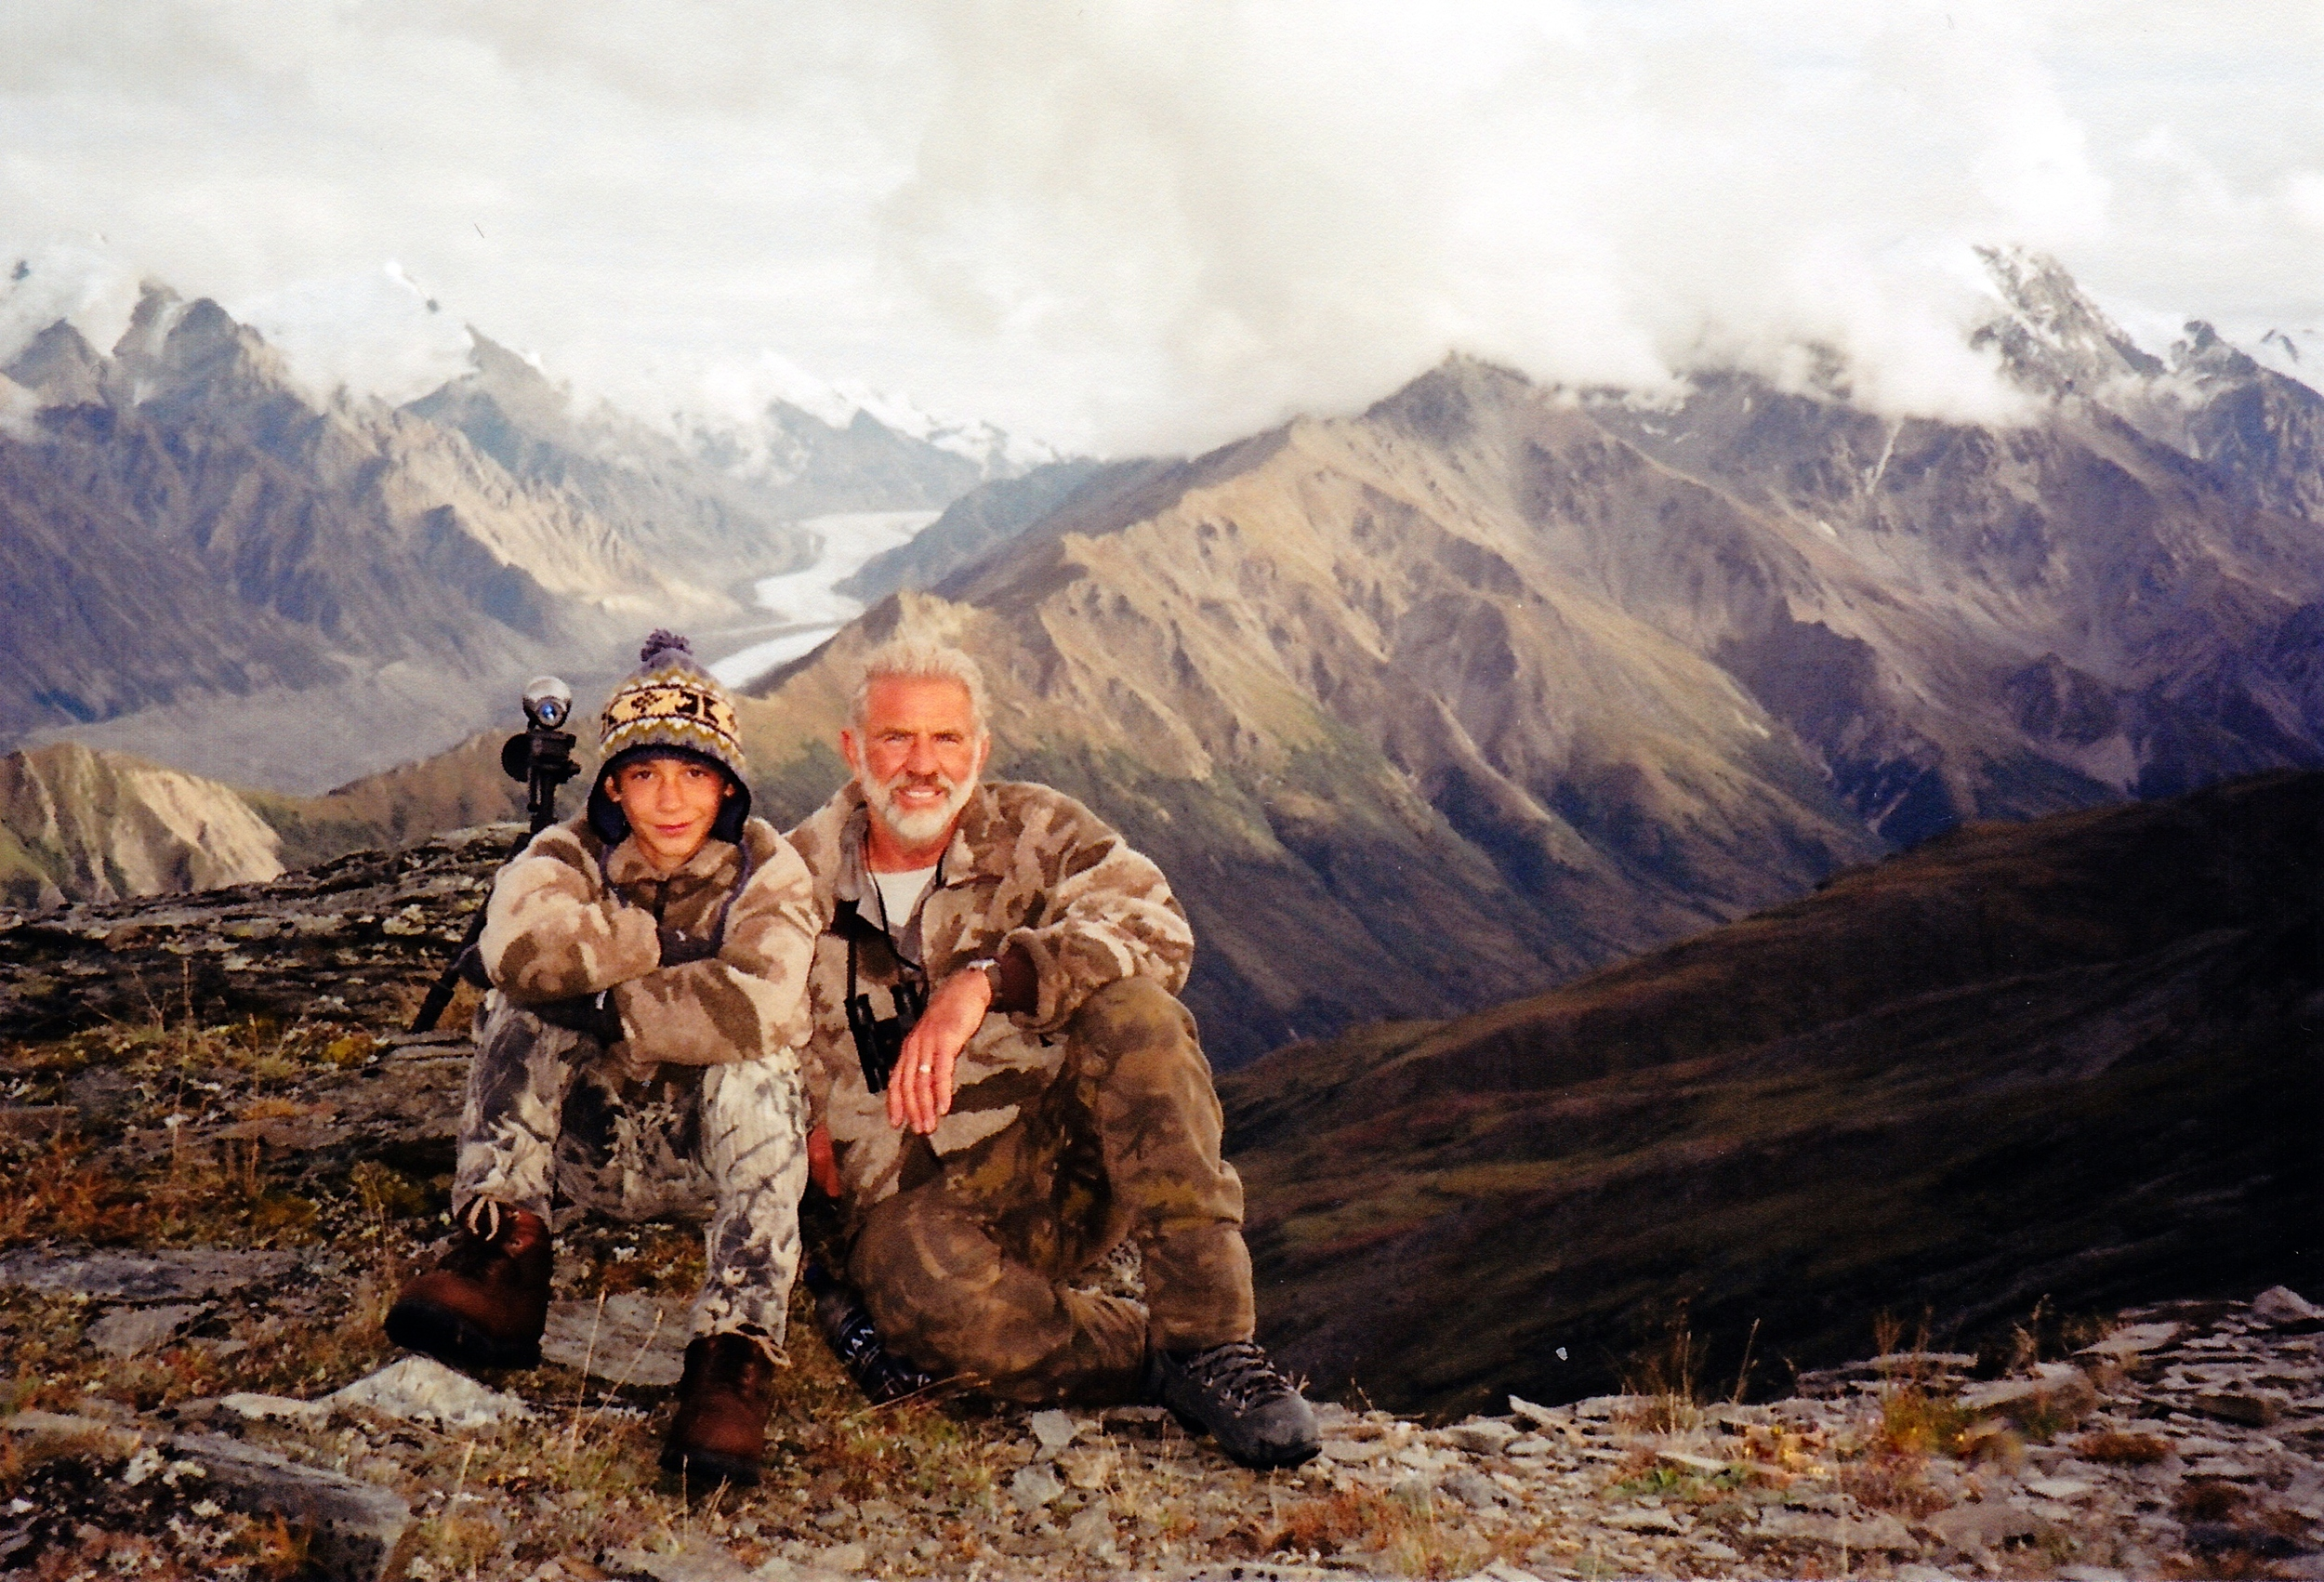 Jared and me surrounded by the beautiful rugged Alaska Range sheep country.